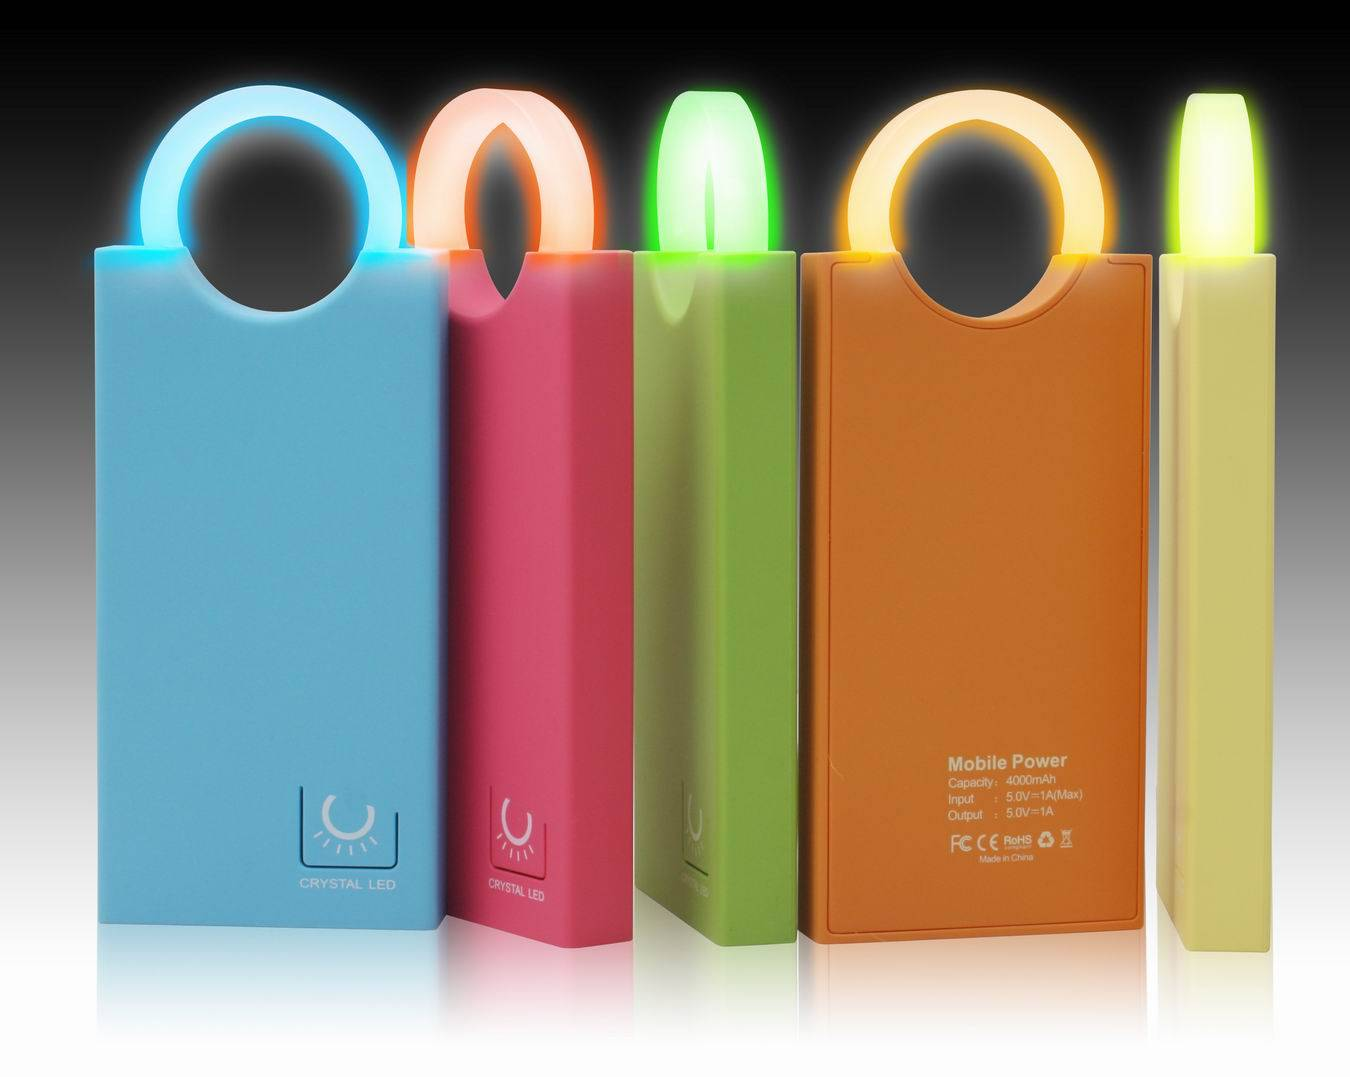 4000mAh power bank with crystal light